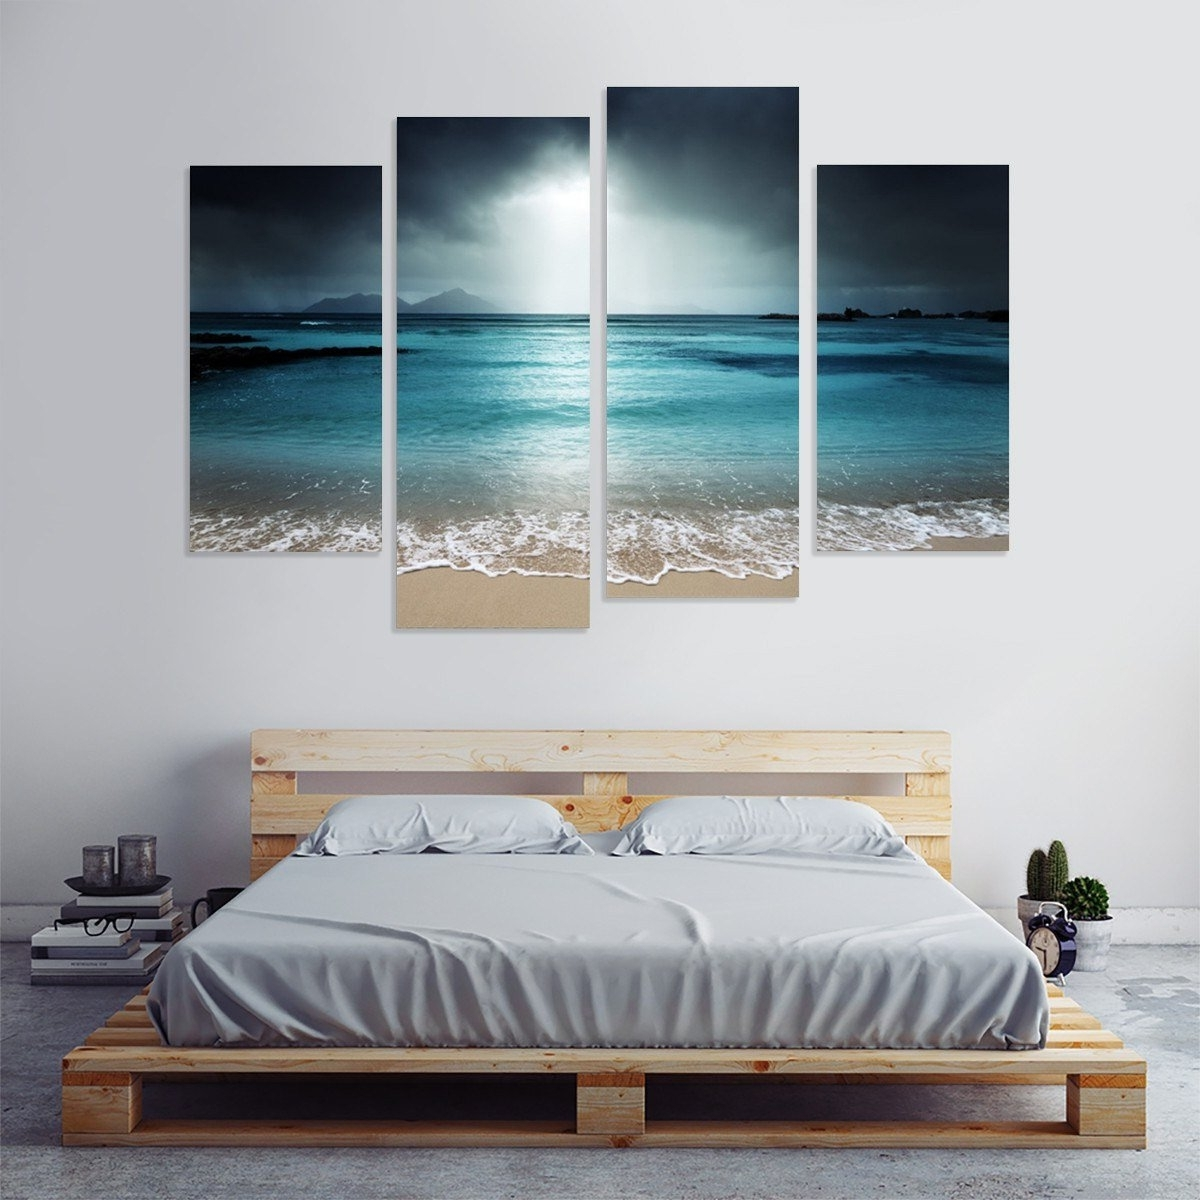 Most Recently Released Wall Art Designs 4 Piece Canvas Wall Art 4 Piece Wall Art Modern With Regard To 4 Piece Canvas Art Sets (View 7 of 15)